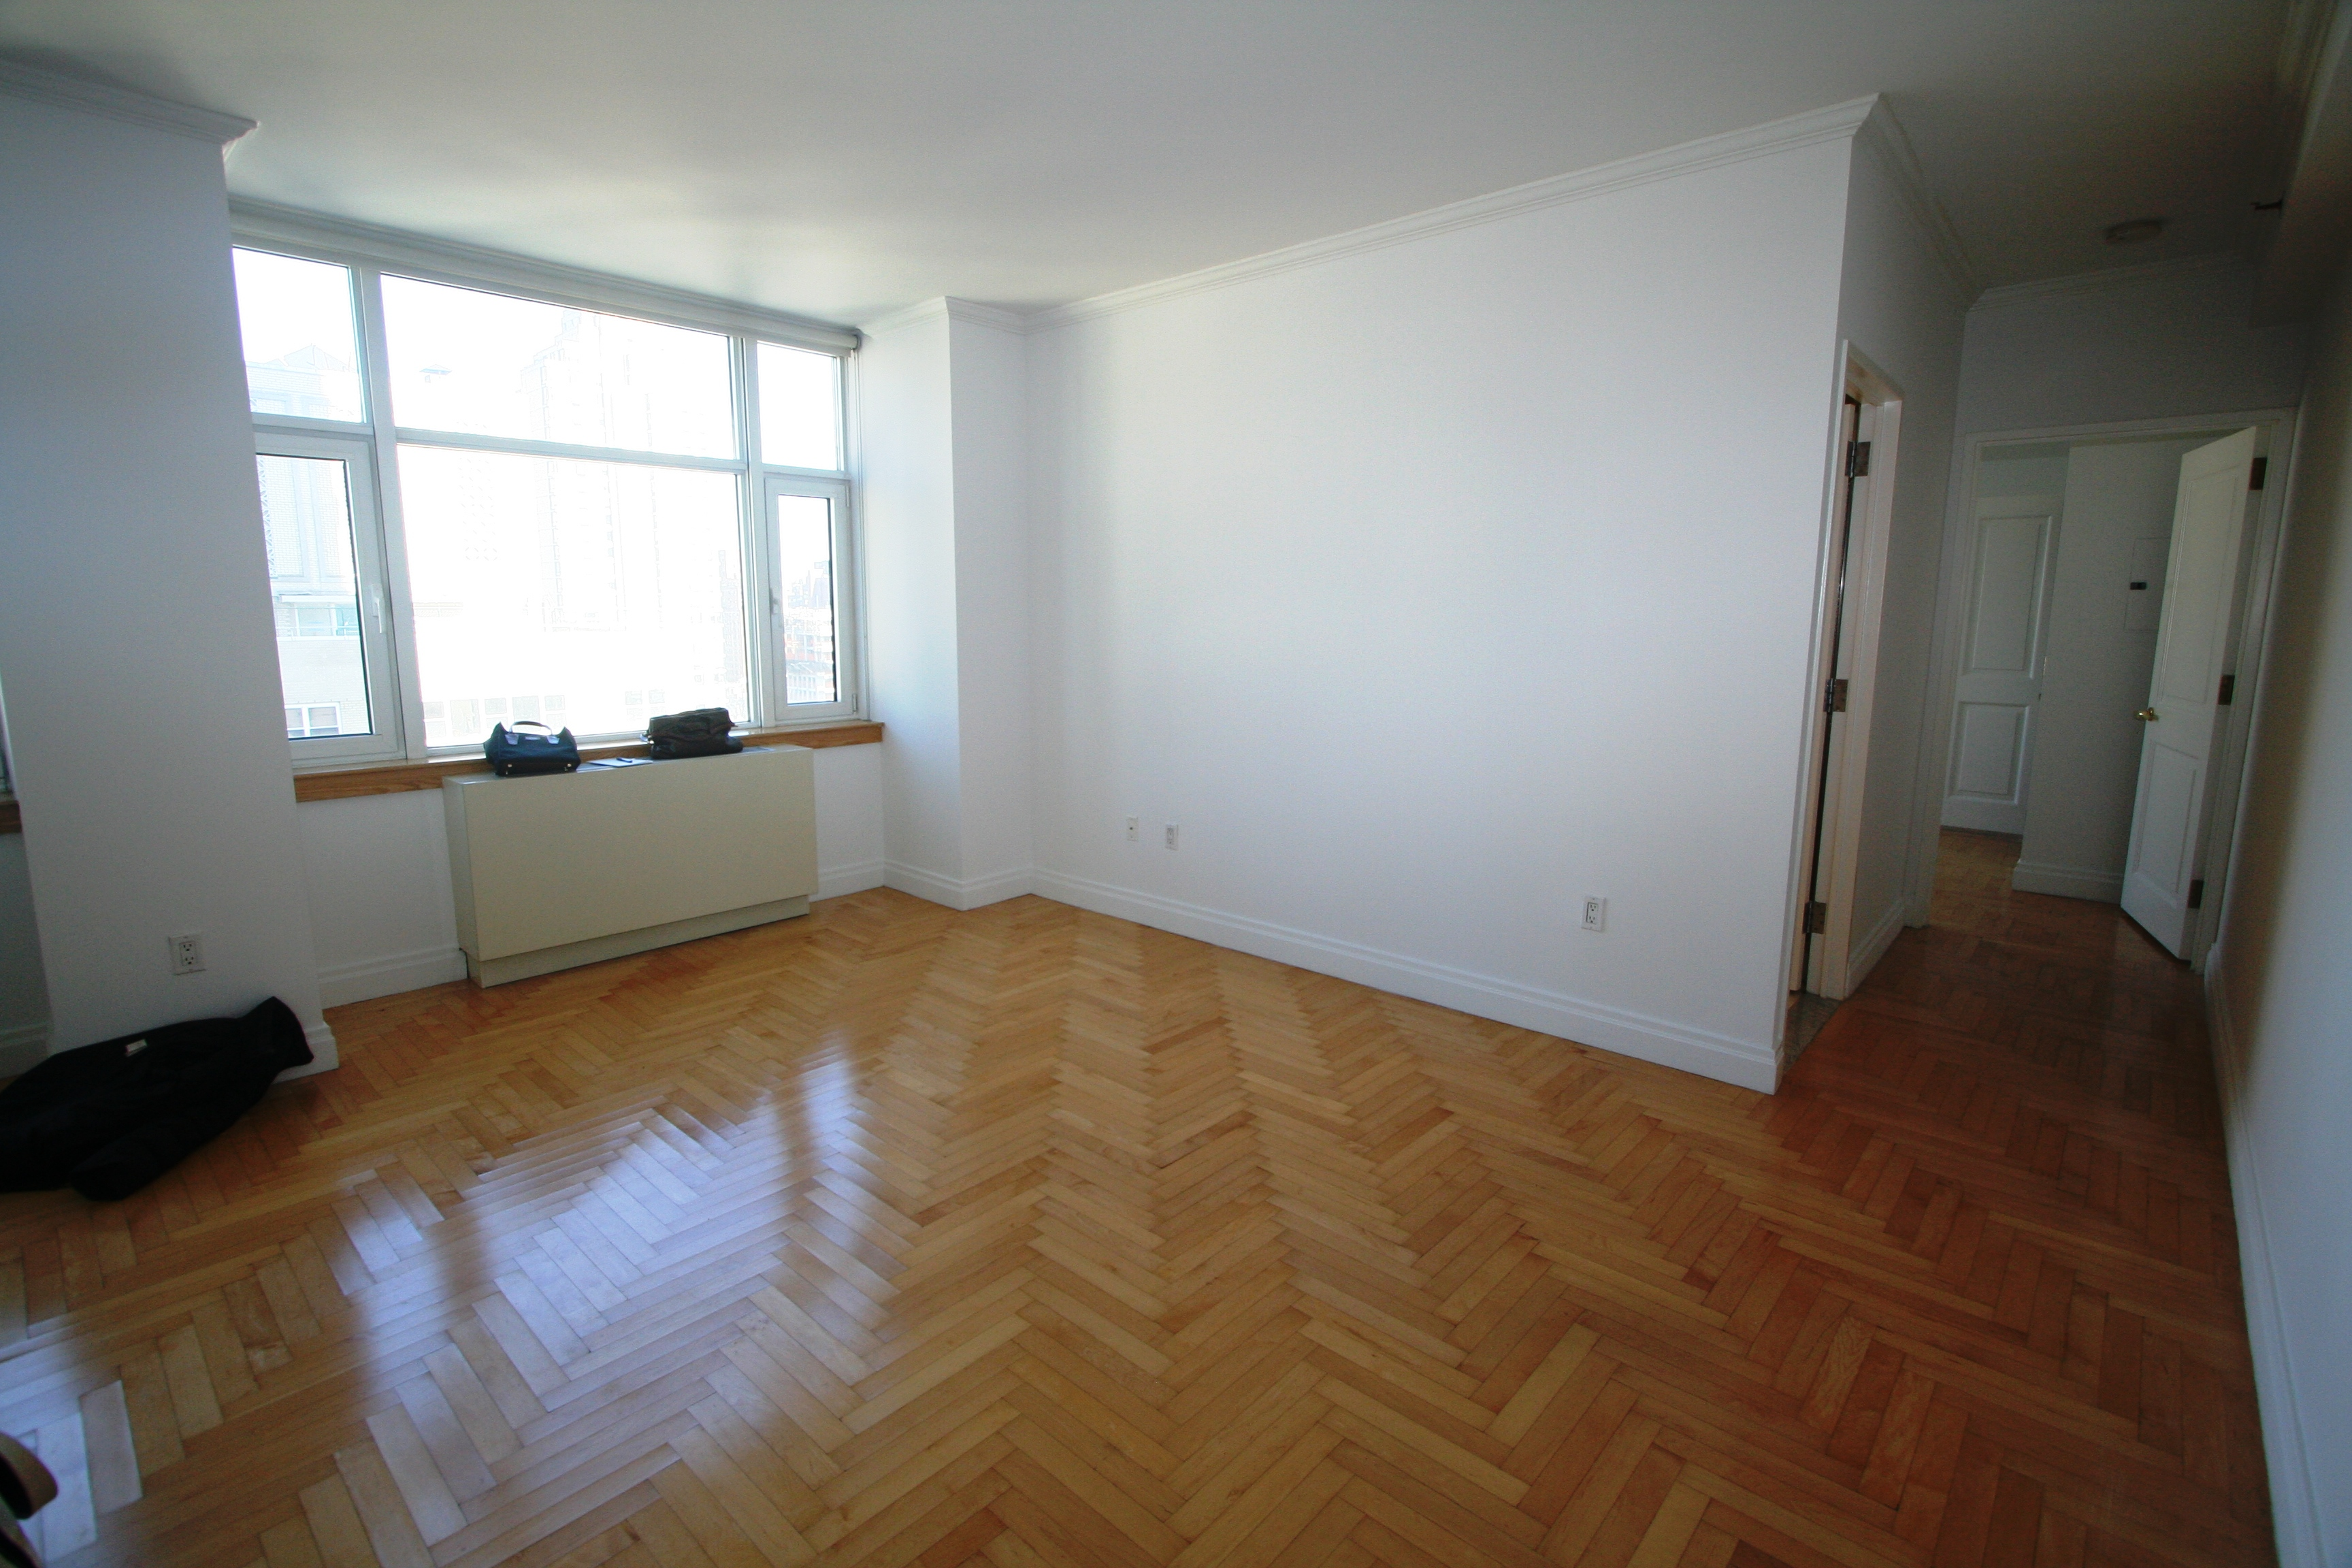 Empty Studio Apartments. Home Staging New York Its A Fact Vacant Houses And Apartments Sit On The  Market Longer Than Occupied Homes what expenses should vacant apartments pay townhome master empty